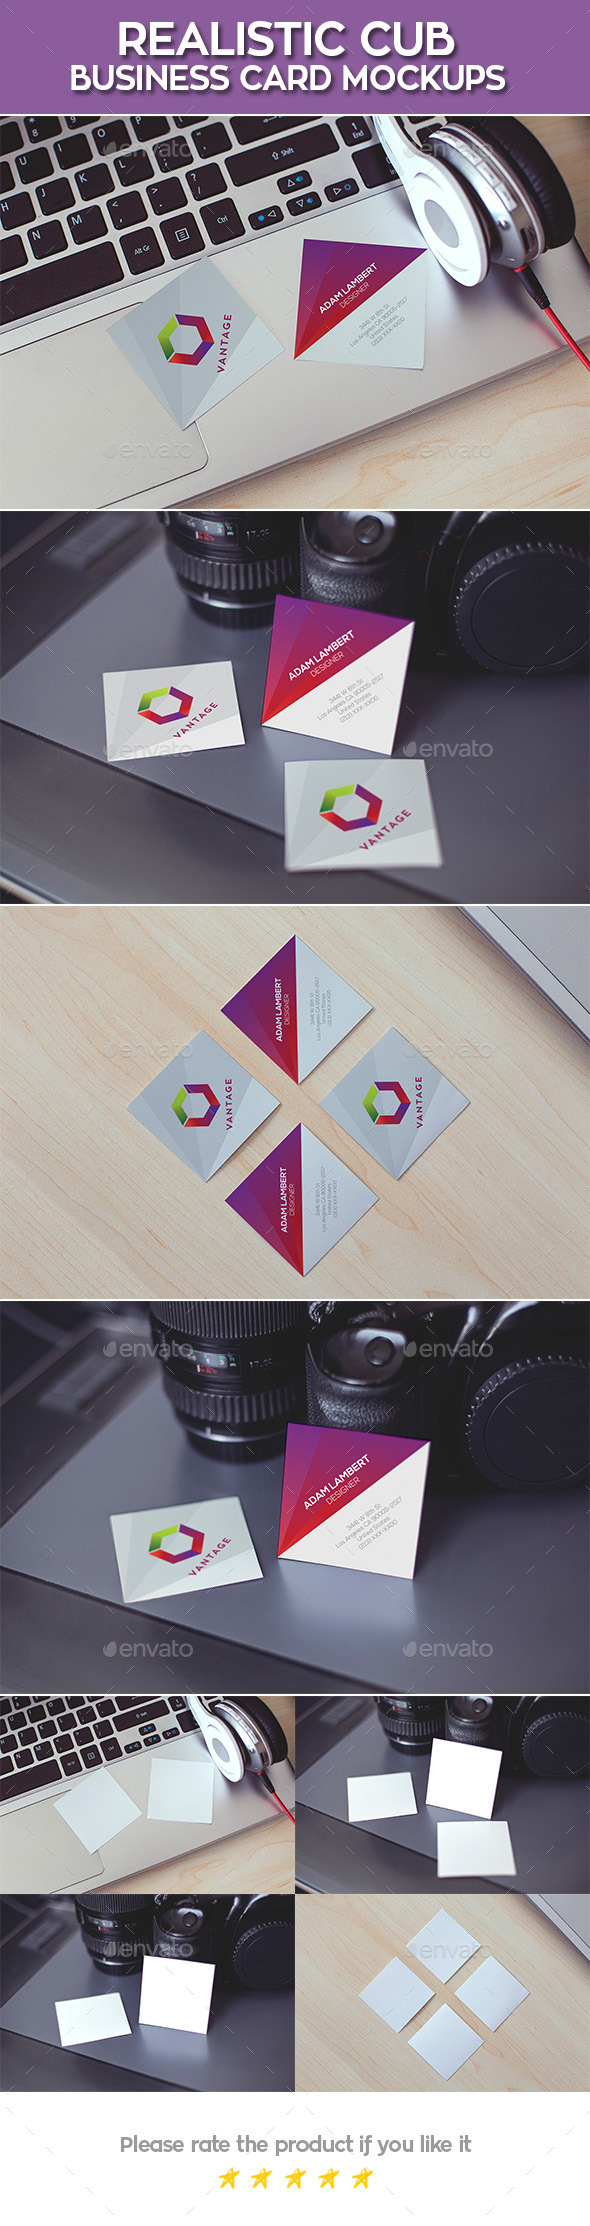 Realistic Cub Business Card Mockups - Business Cards Print